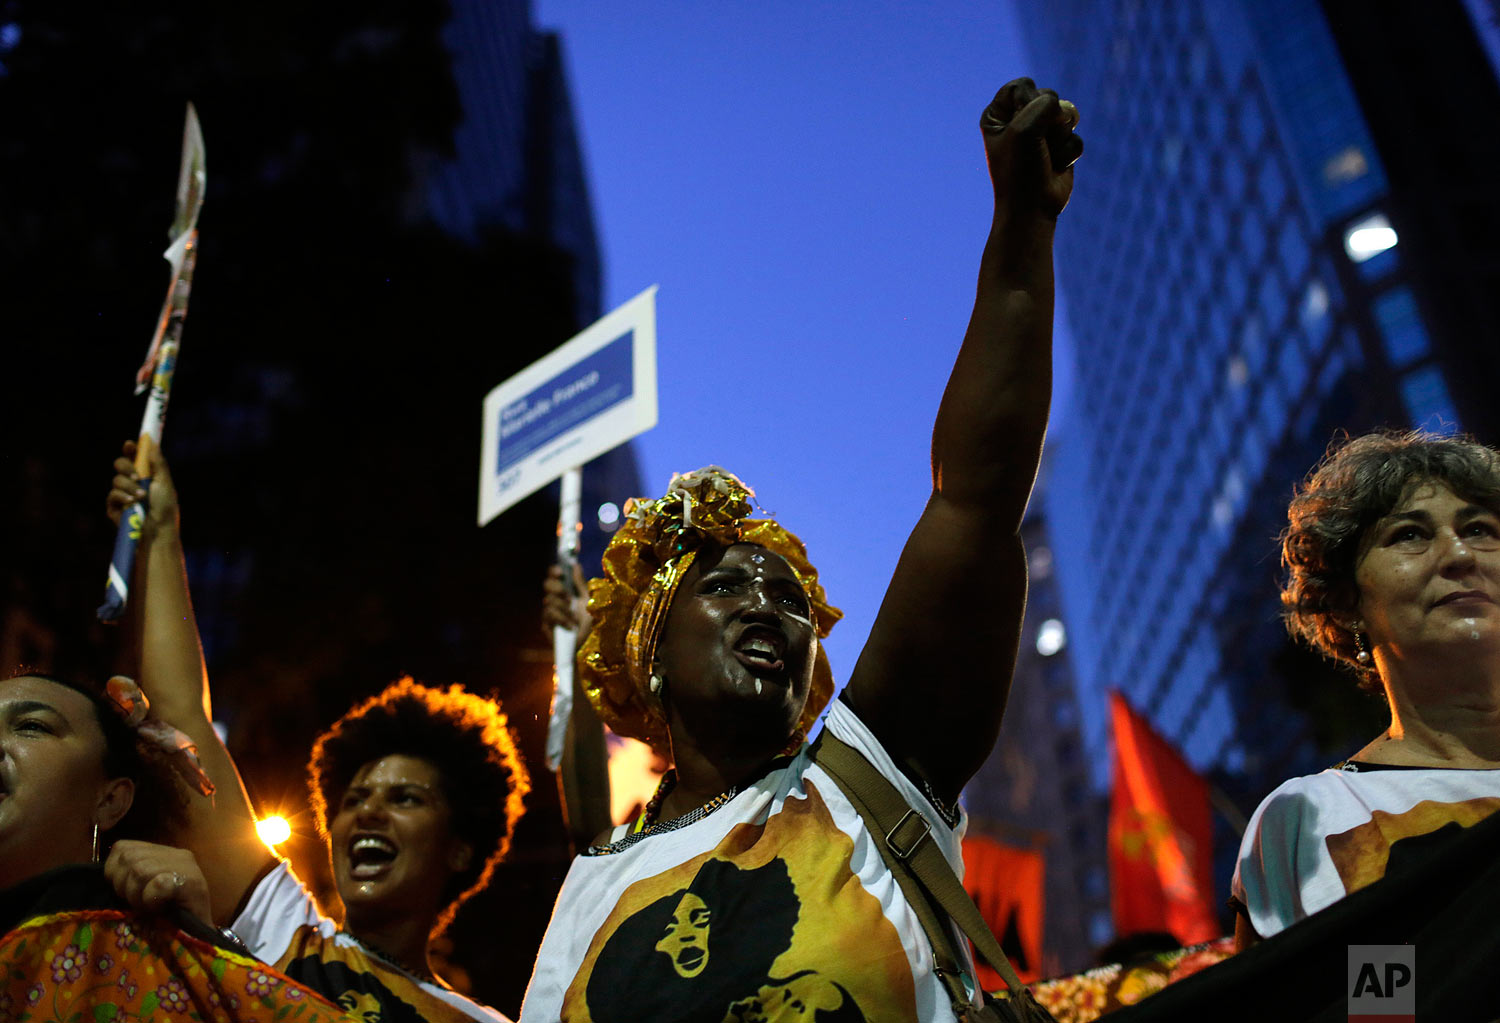 In this March 8, 2019 photo, women shout slogans during a march marking International Women's Day in Rio de Janeiro, Brazil. (AP Photo/Silvia Izquierdo)